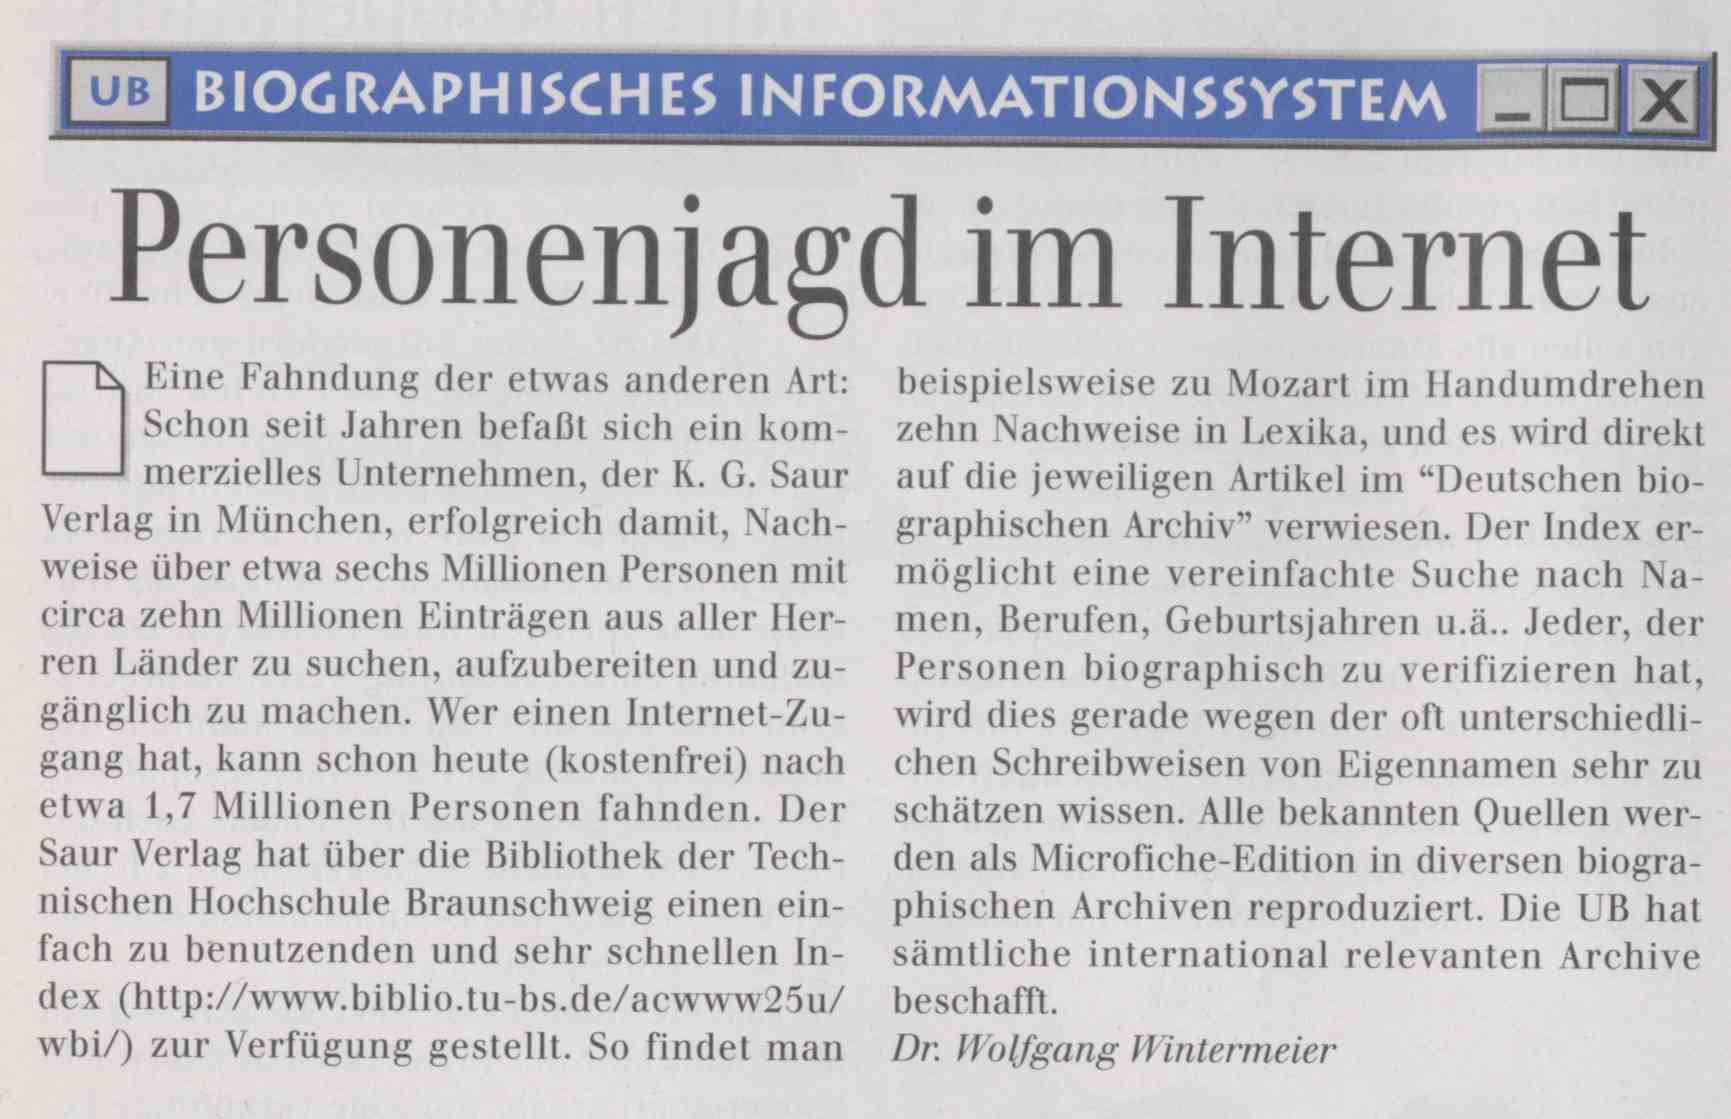 Biographisches Informationssystem: Personenjagd im Internet